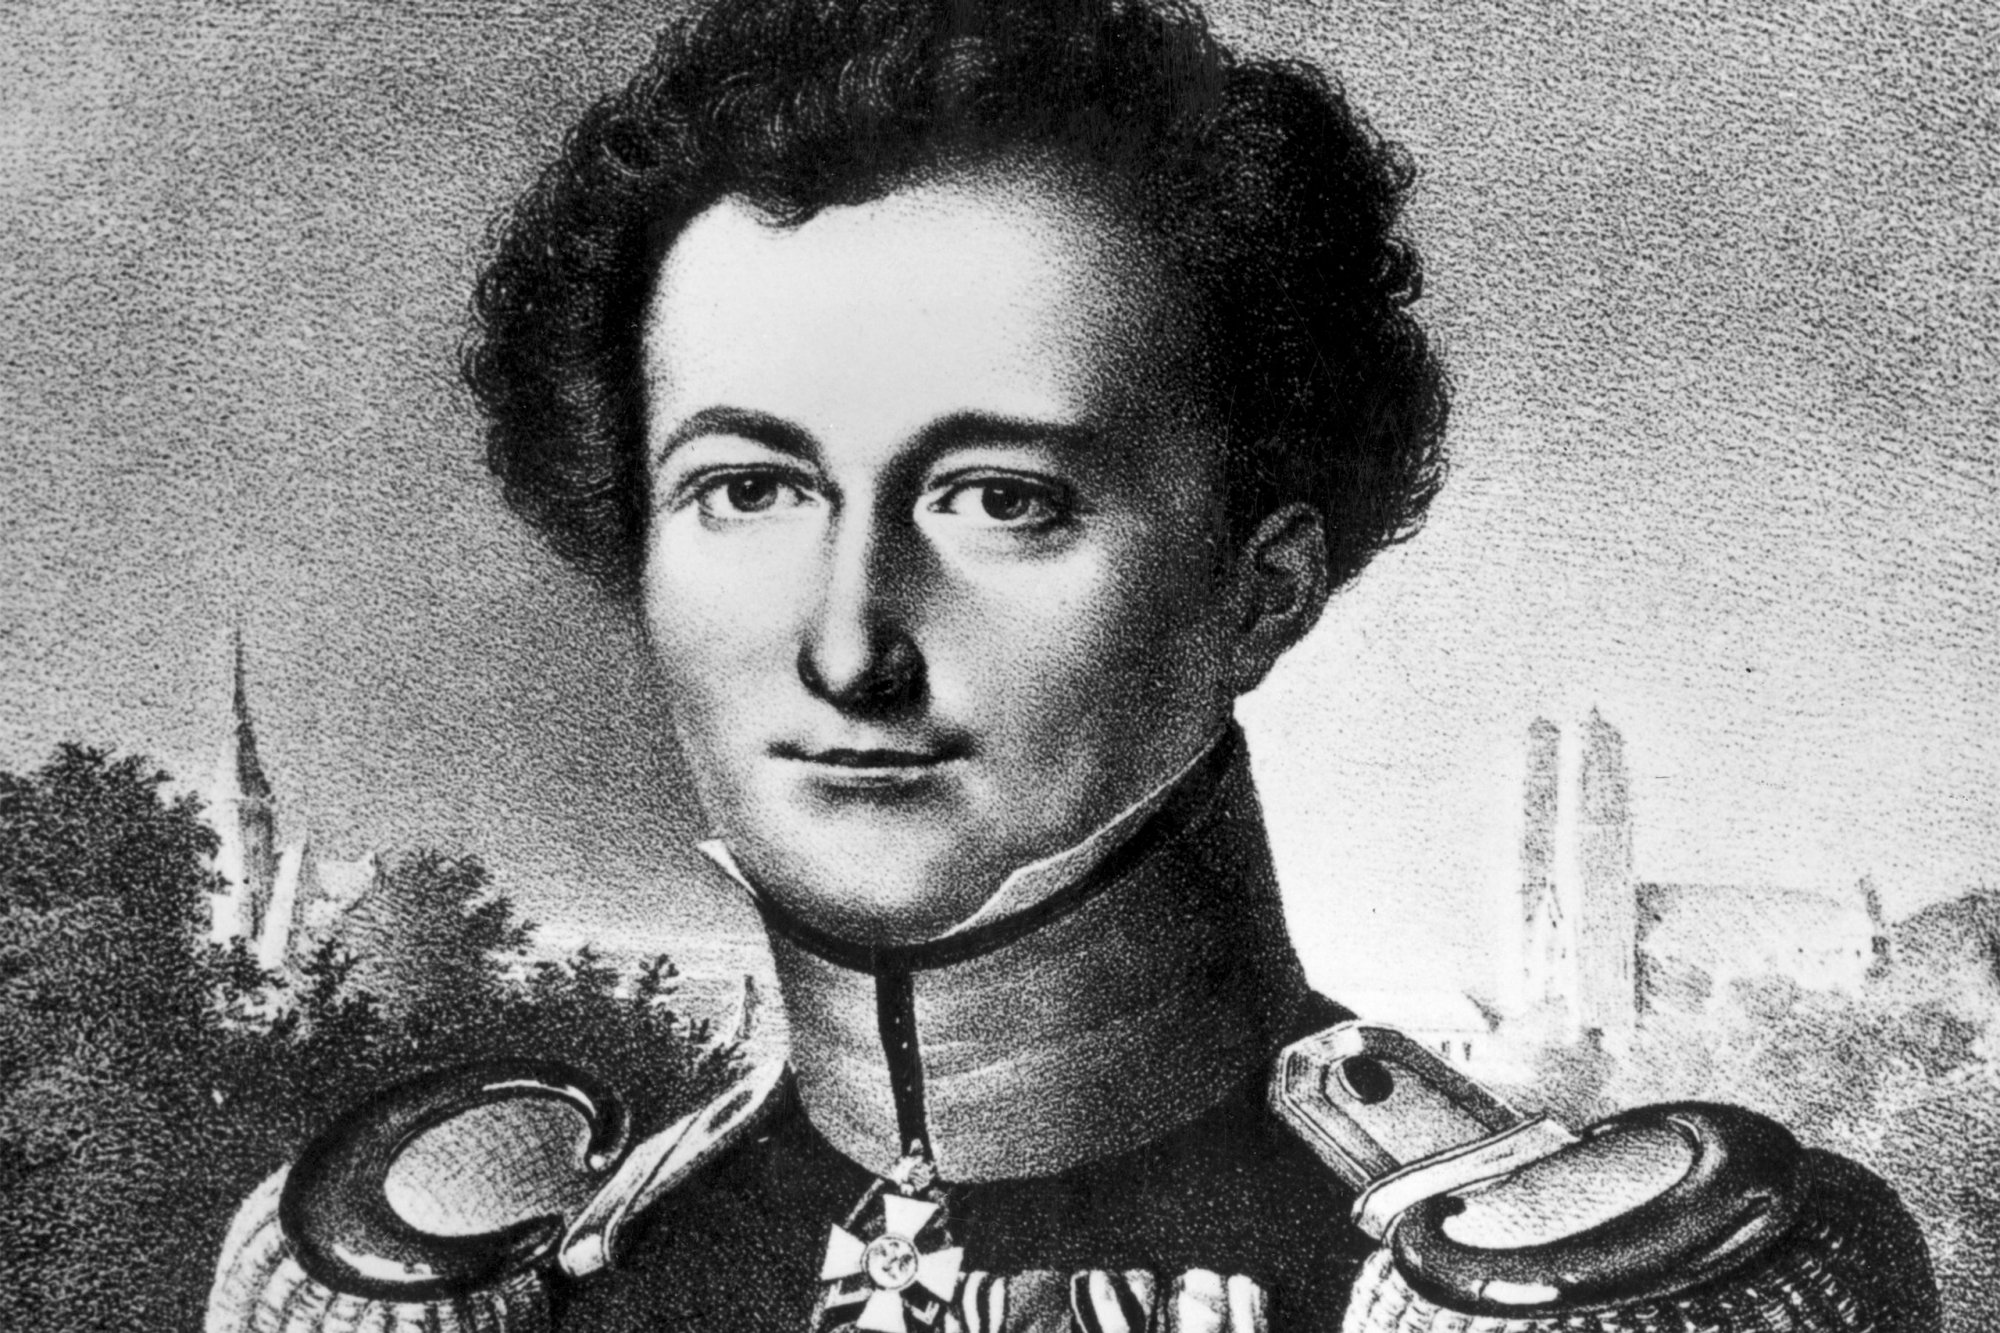 """Carl von Clausewitz: """"War in its highest aspects consists…of separate great decisive events which must be dealt with separately. It is…a group of large trees, to which the axe must be laid with judgment, according to the particular form and inclination of each separate trunk."""""""